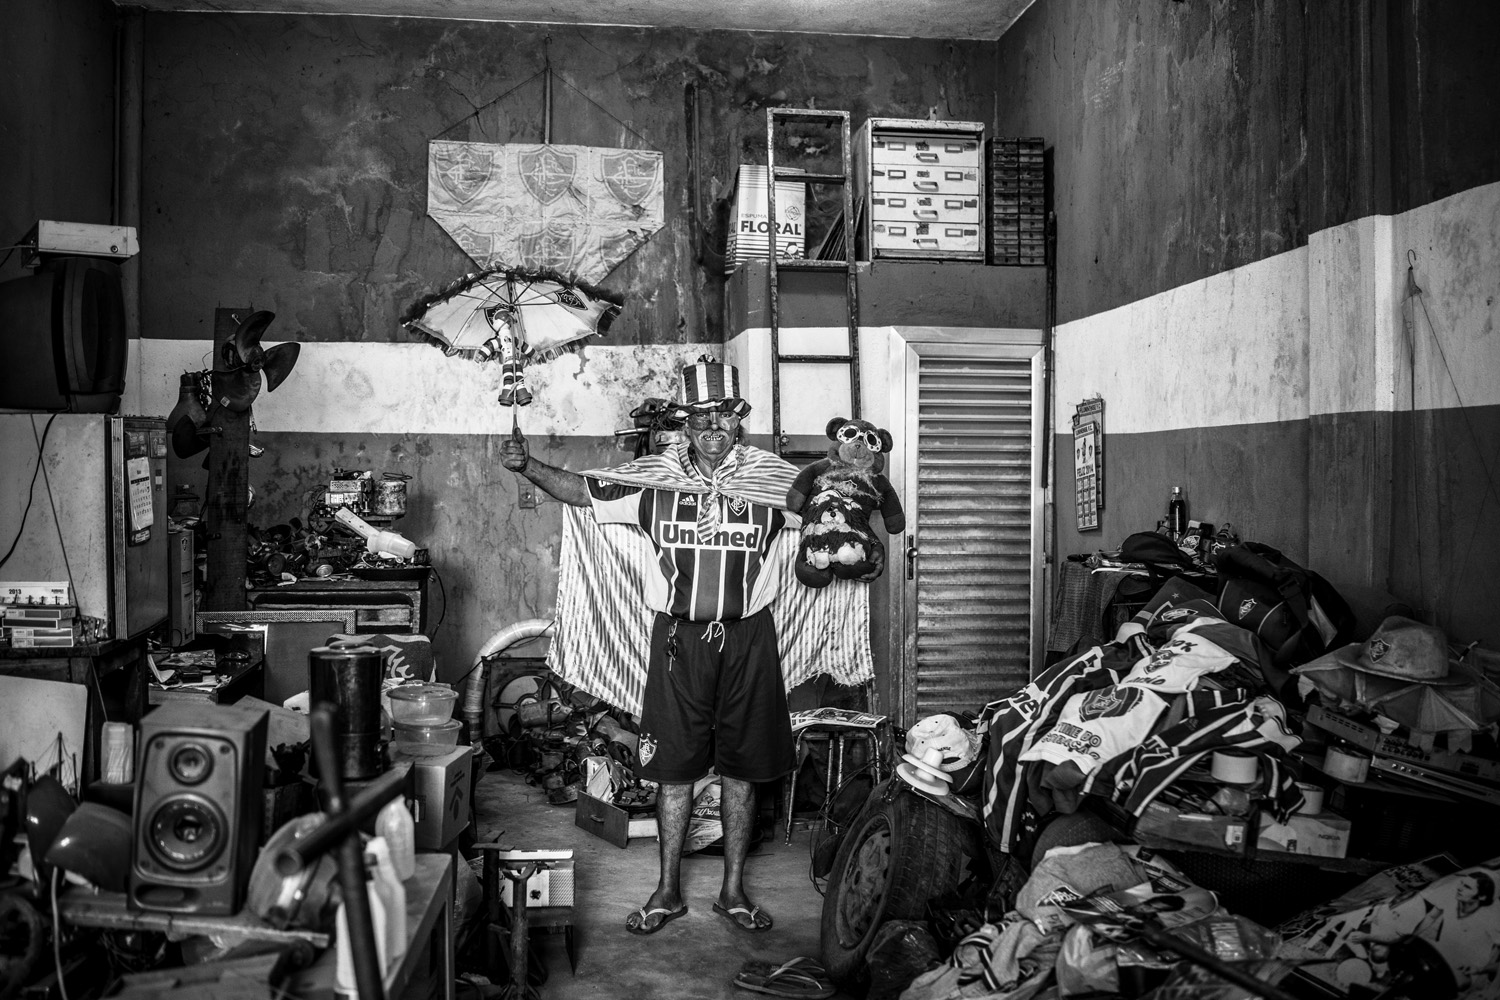 Desiree Rogério de Carvalho, 63, is a car mechanic. His workshop is filled with paintings and banners of Fluminense FC. He has his teeth painted in the team's colors. He is such a fan, he did not go to his own wedding because it clashed with a match.